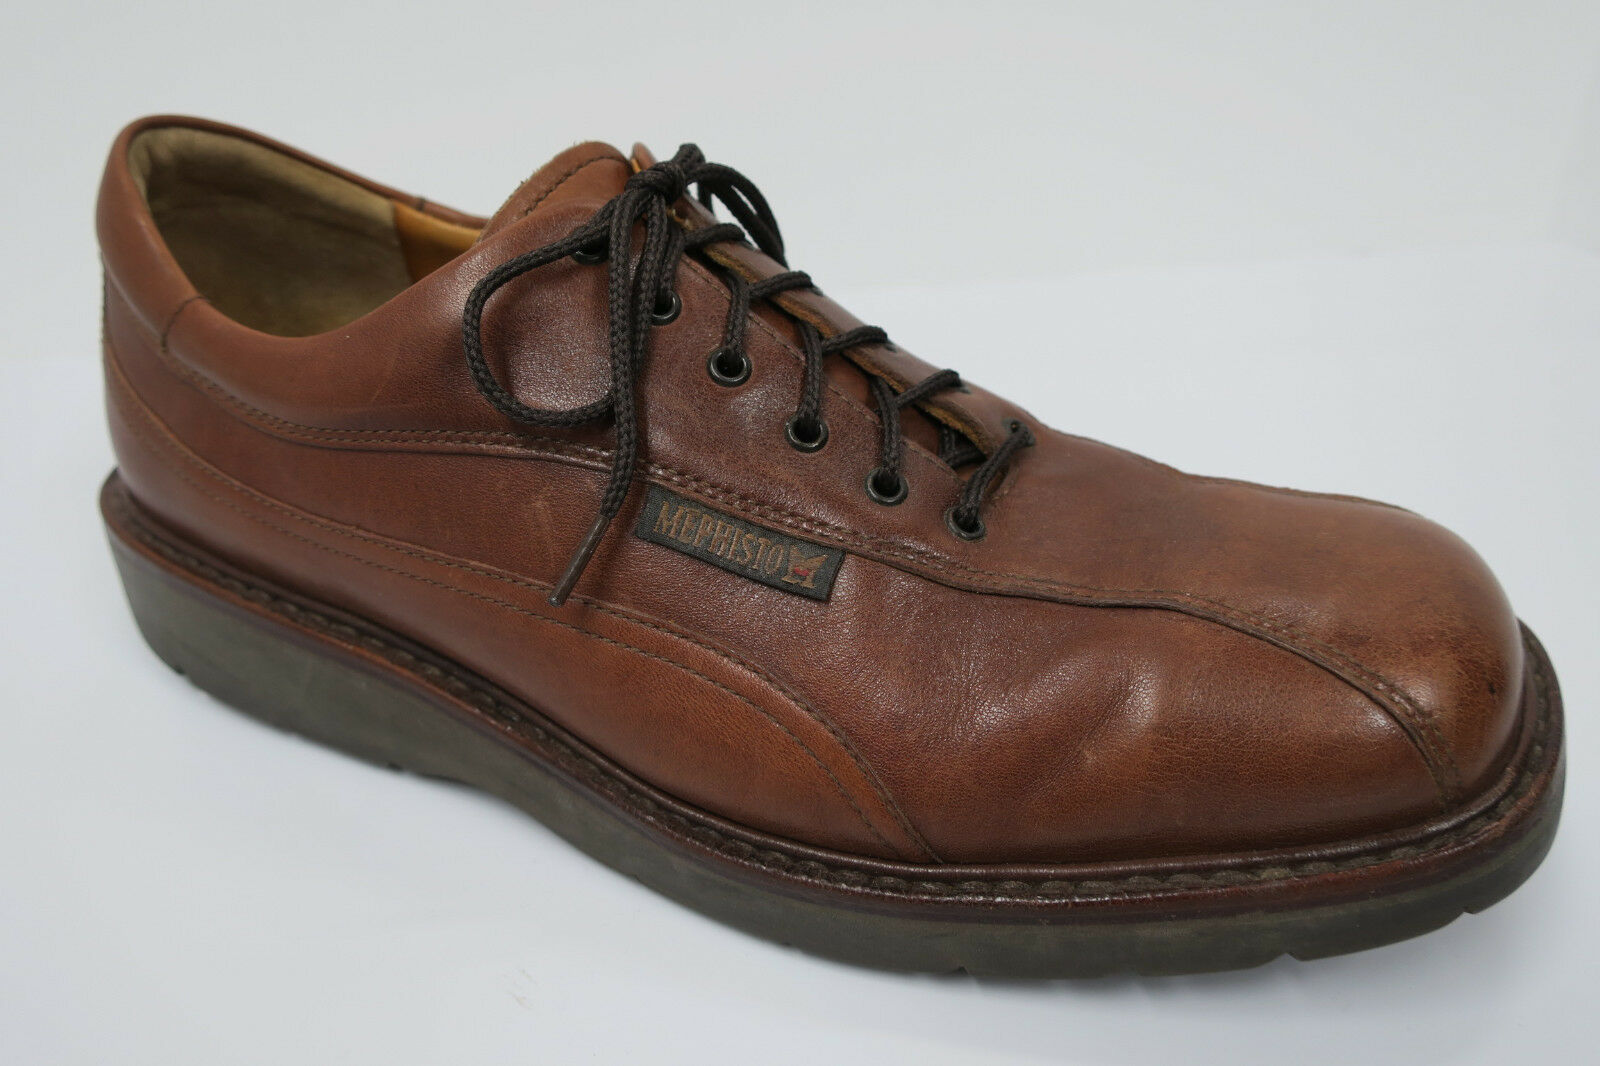 9db37bd479f11e Bicycle Oxfords 9 made in France Brown toe MEPHISTO nsqkmk4883 ...